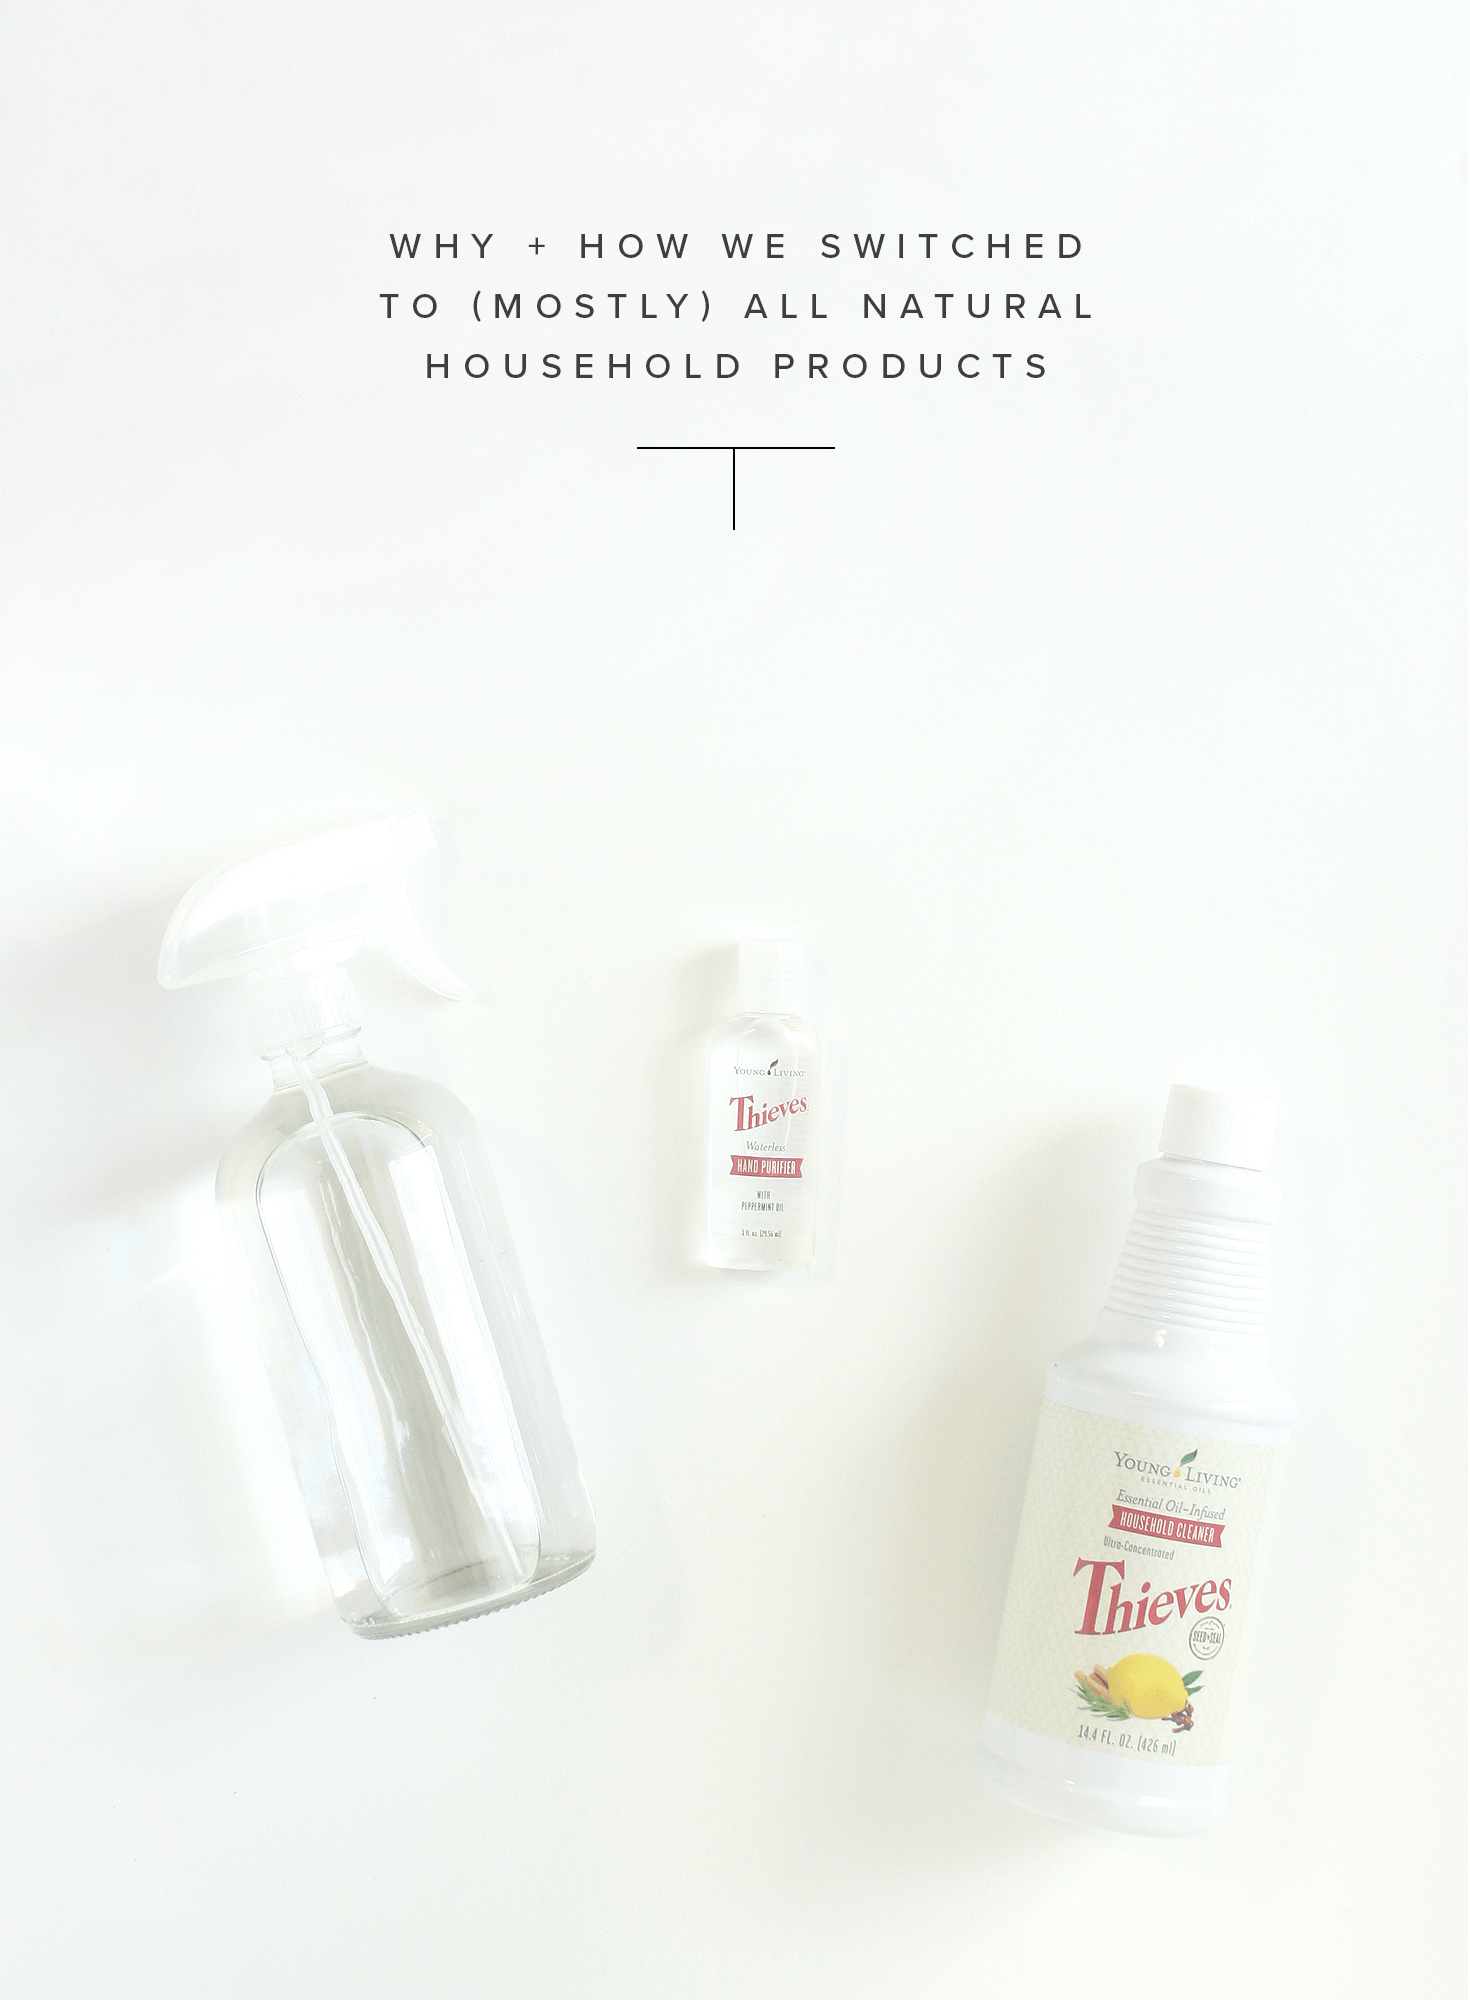 Why + How We Switched to (Mostly) All Natural Household Products